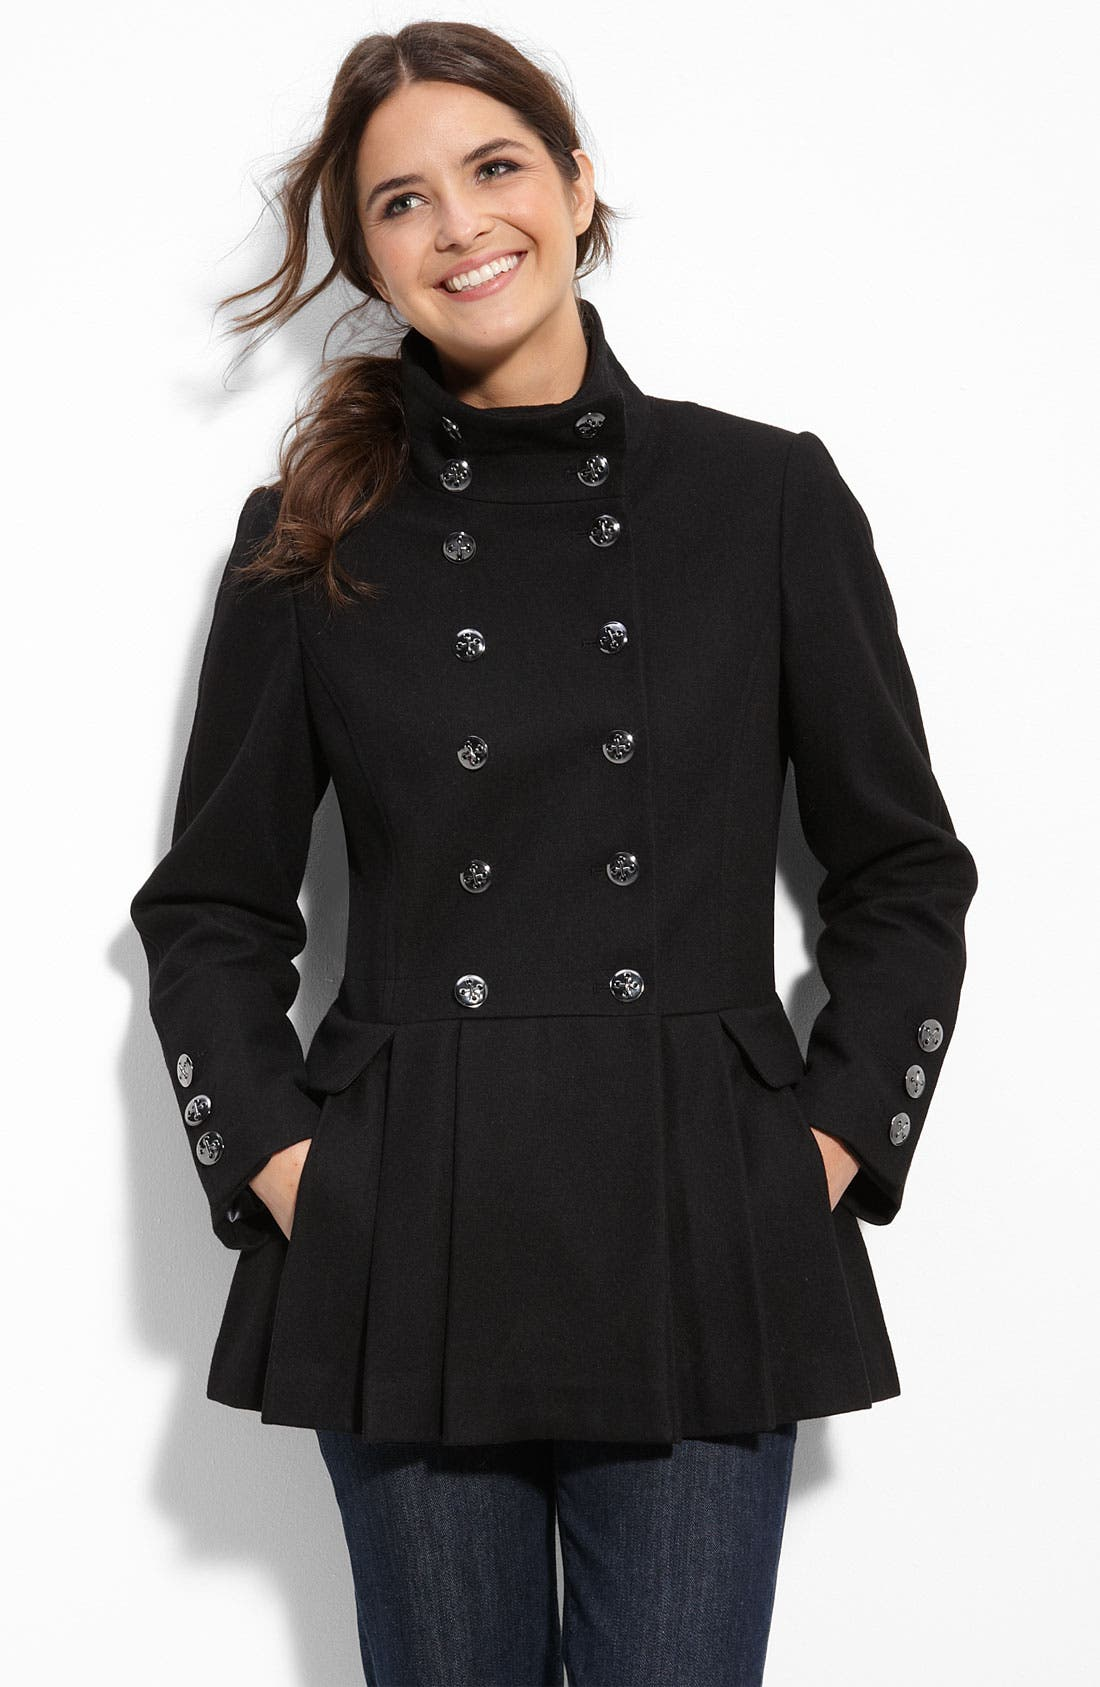 Main Image - Calvin Klein Military Inspired Wool Blend Coat